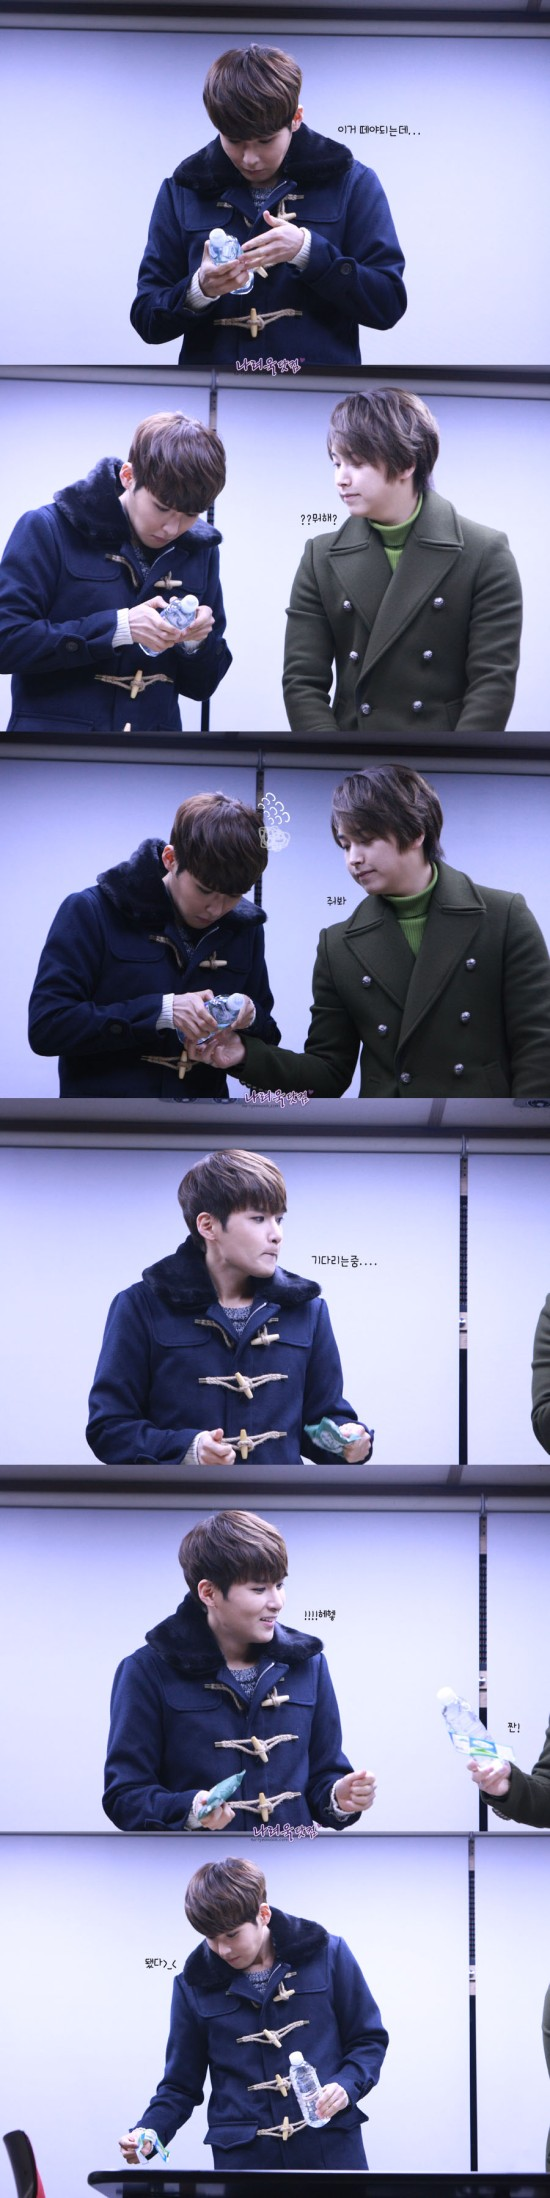 130130 Ryeowook 4